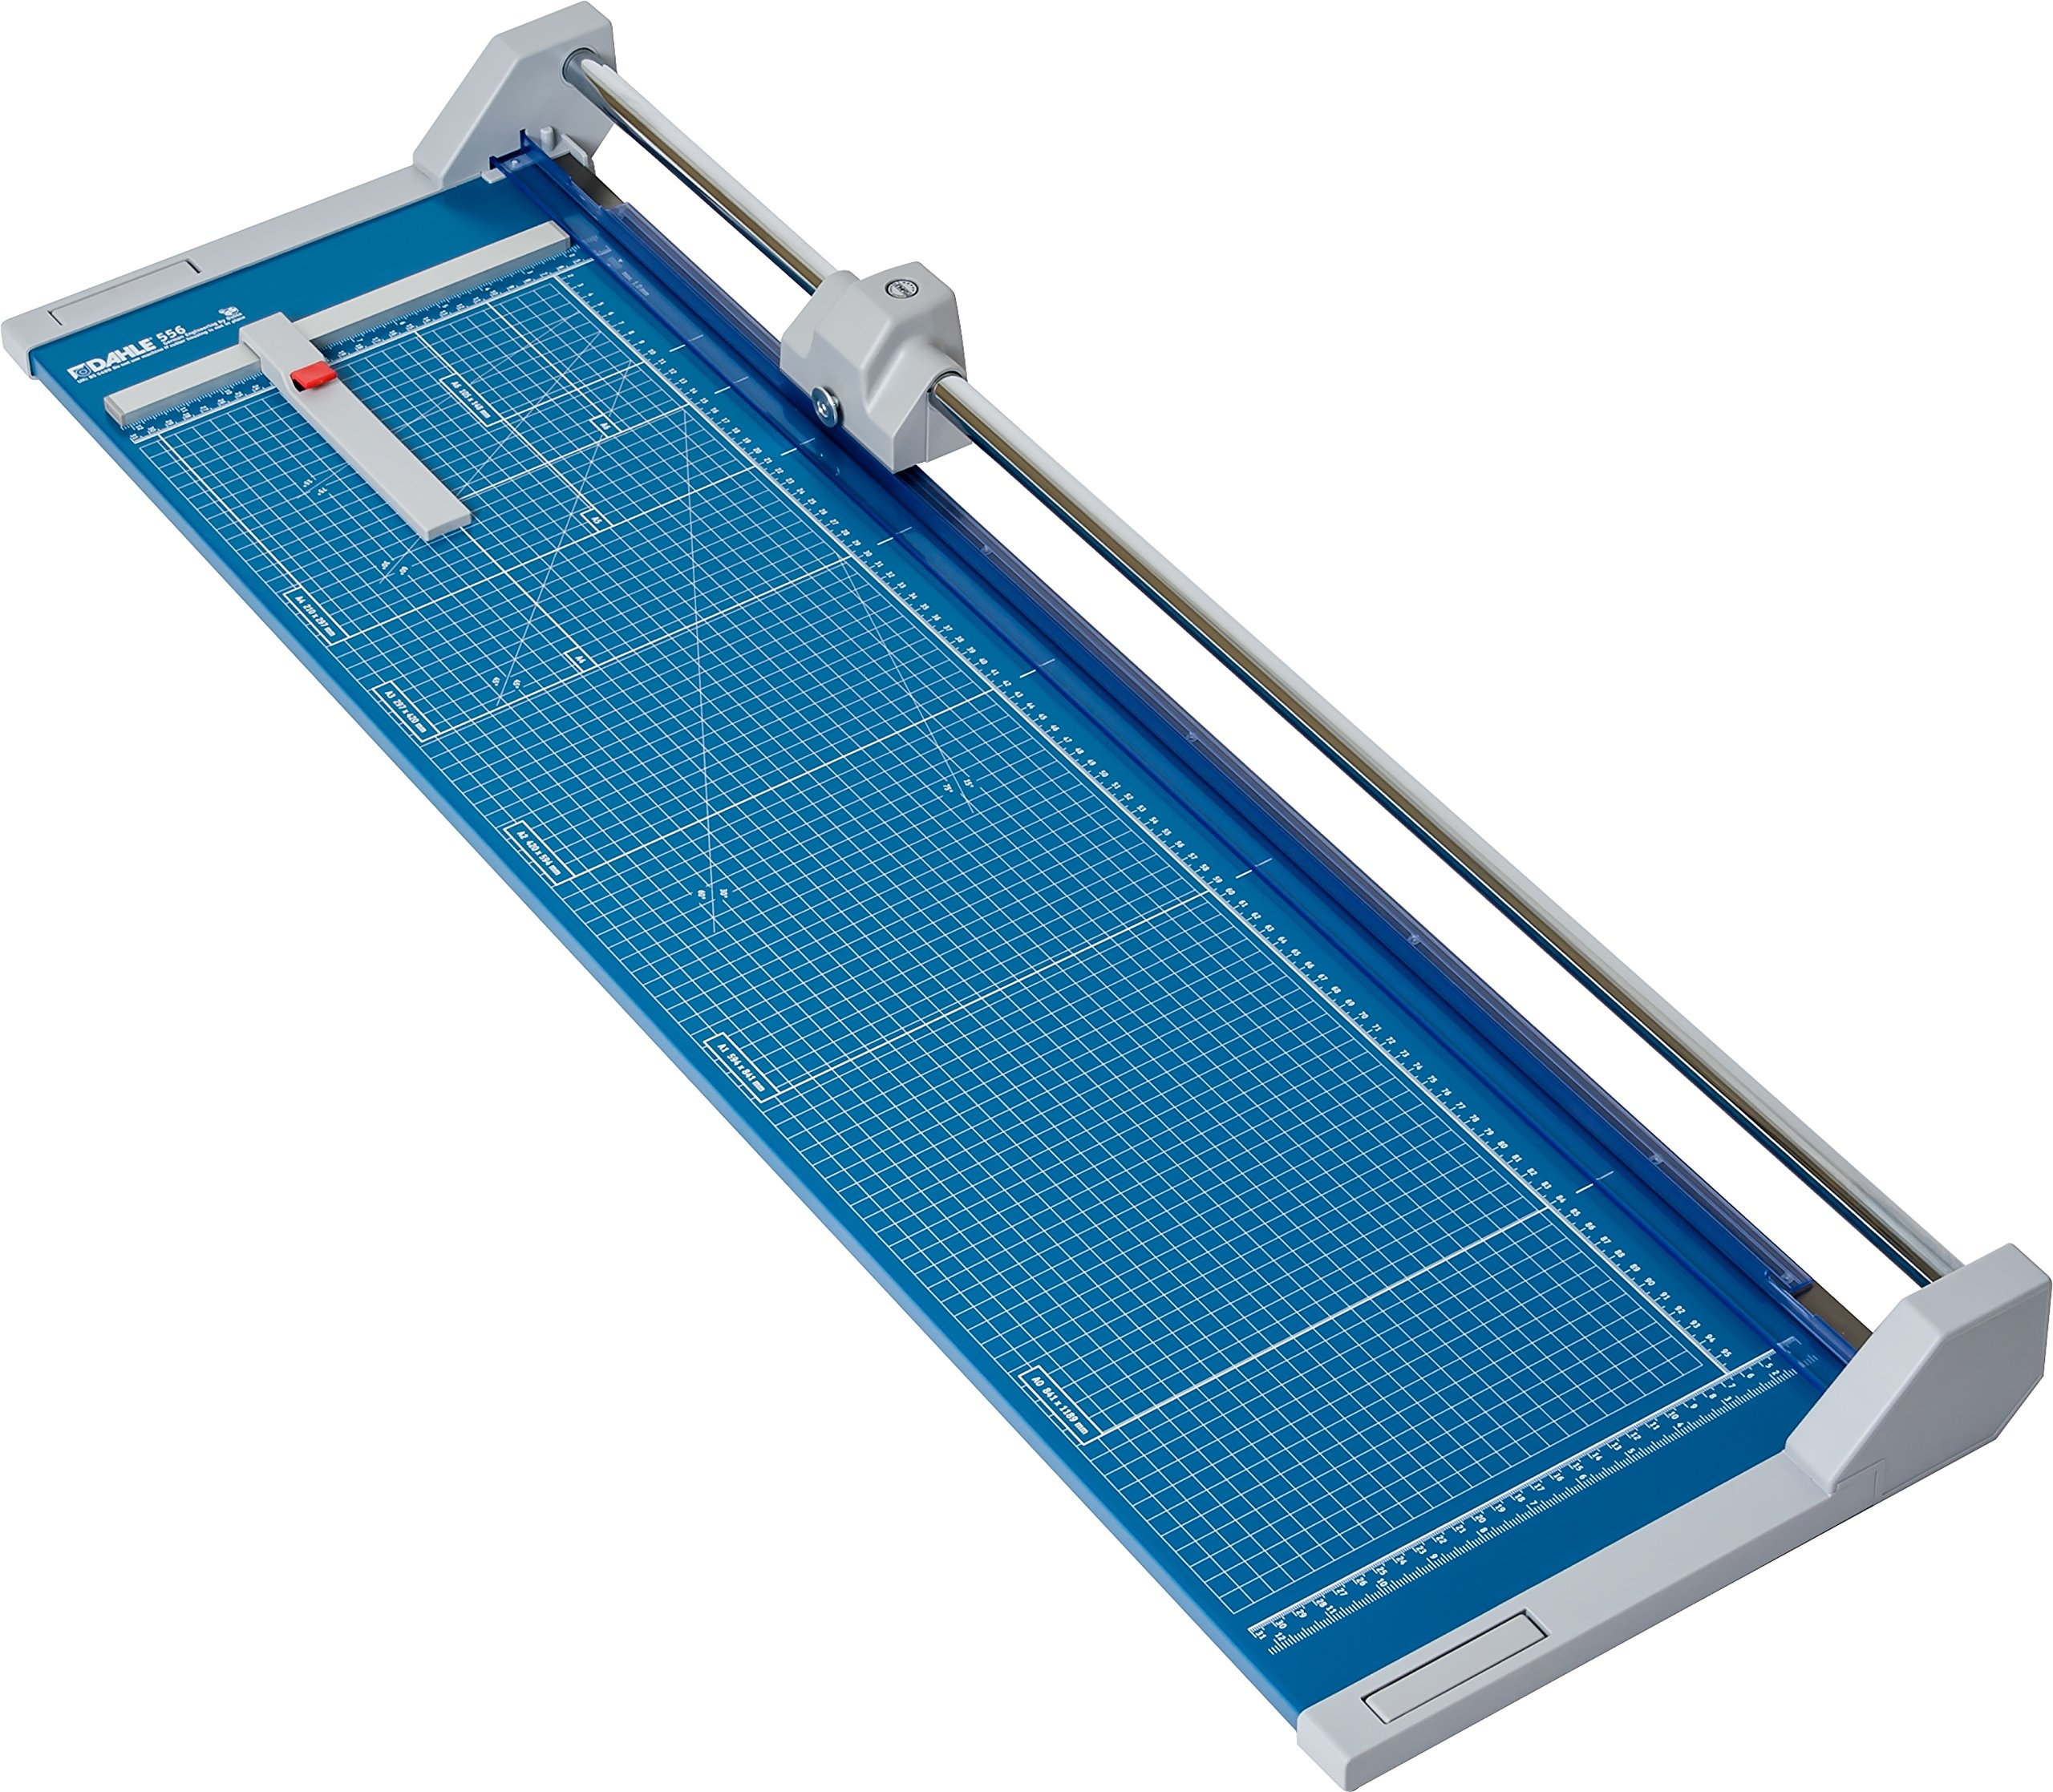 Dahle 556 Professional Rolling Trimmer, 37-3/4'' Cut Length, 14 Sheet Capacity, Self-Sharpening, Automatic Clamp, German Engineered Paper Cutter